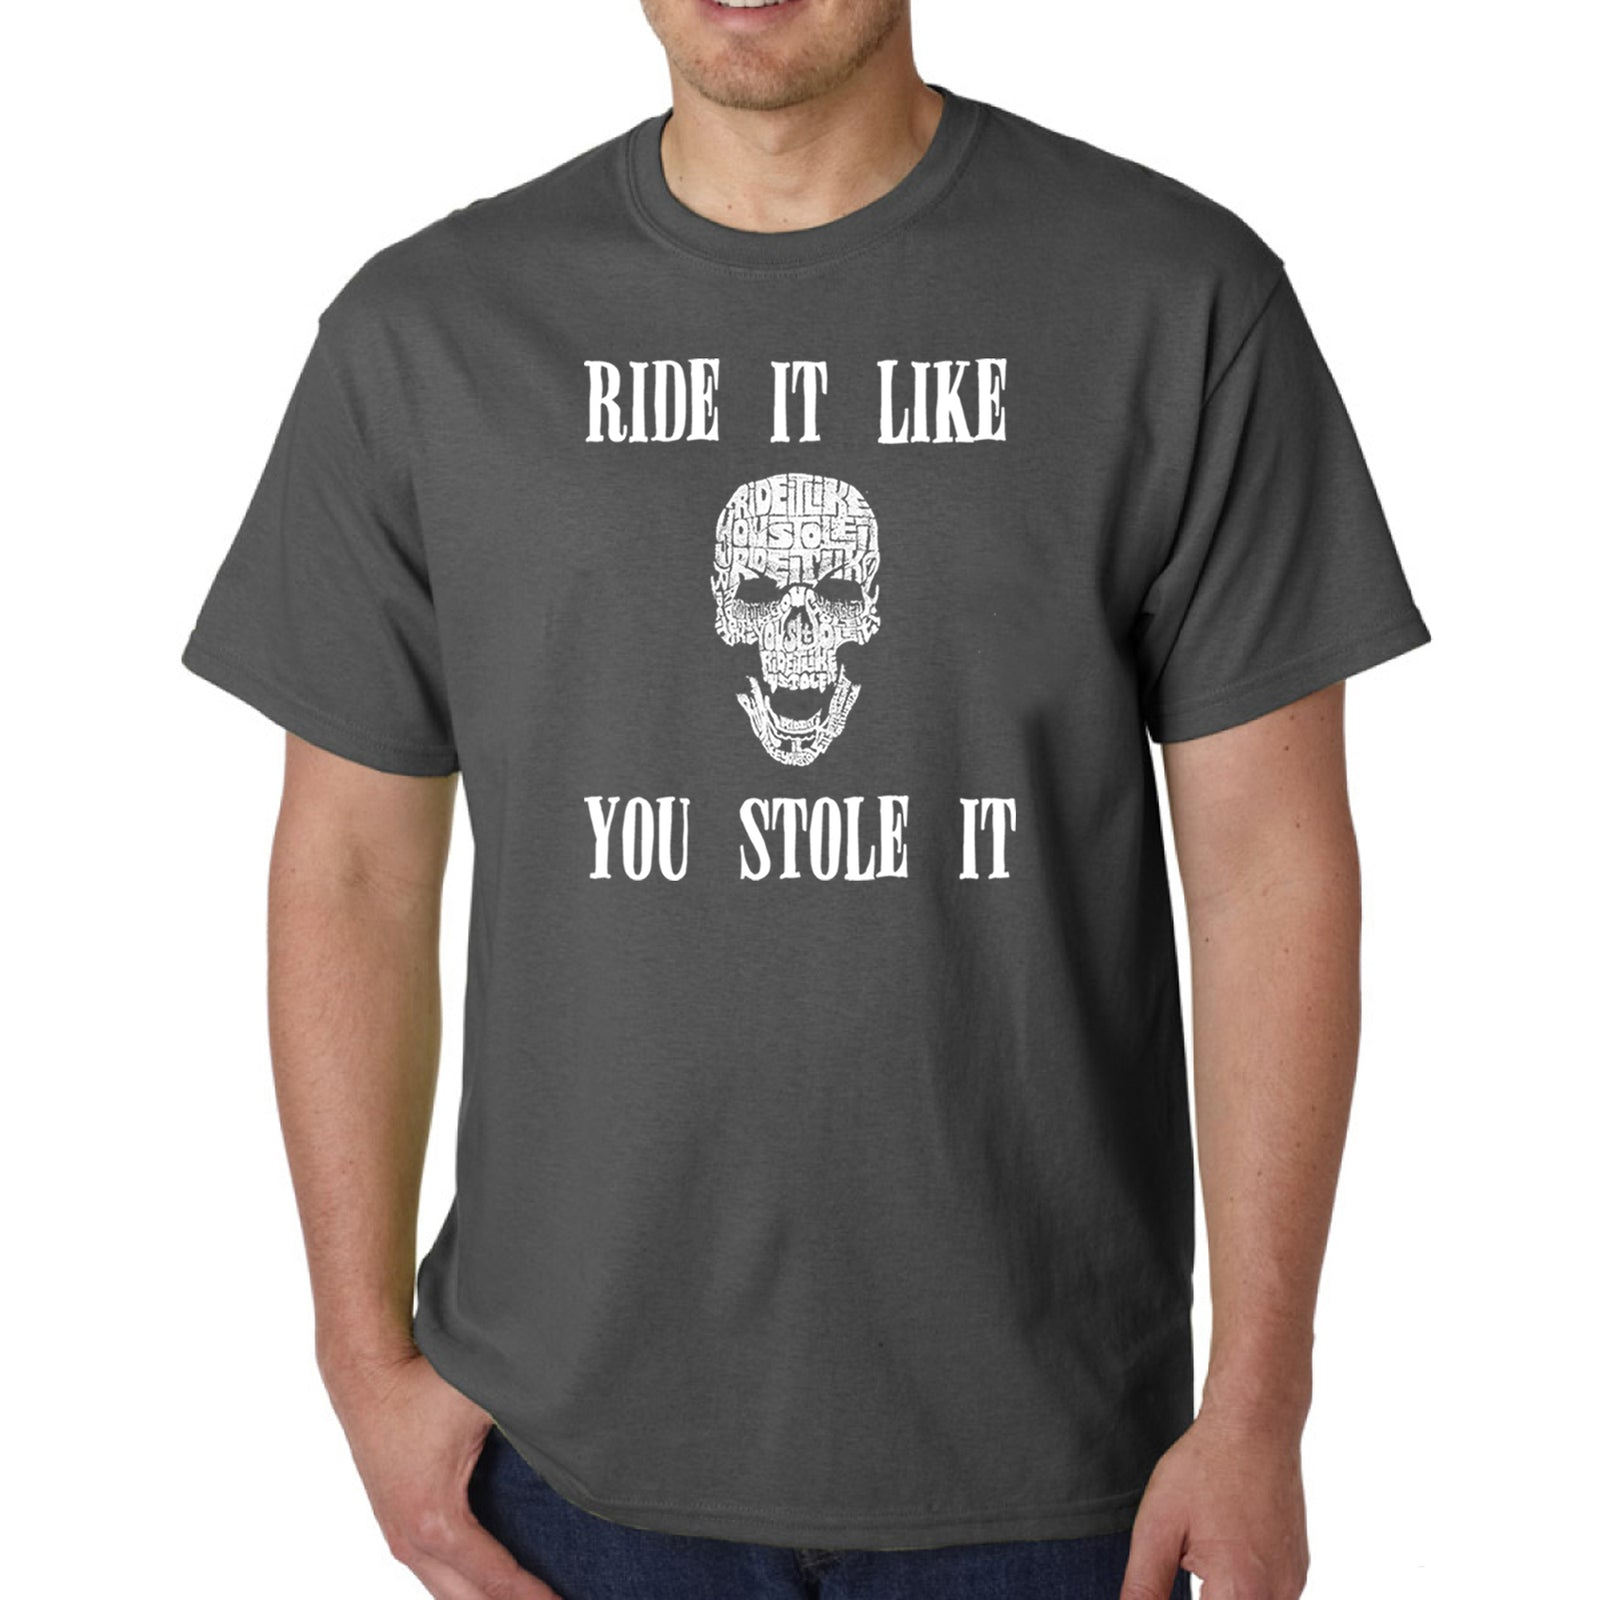 Men's Word Art T-shirt - Ride It Like You Stole It